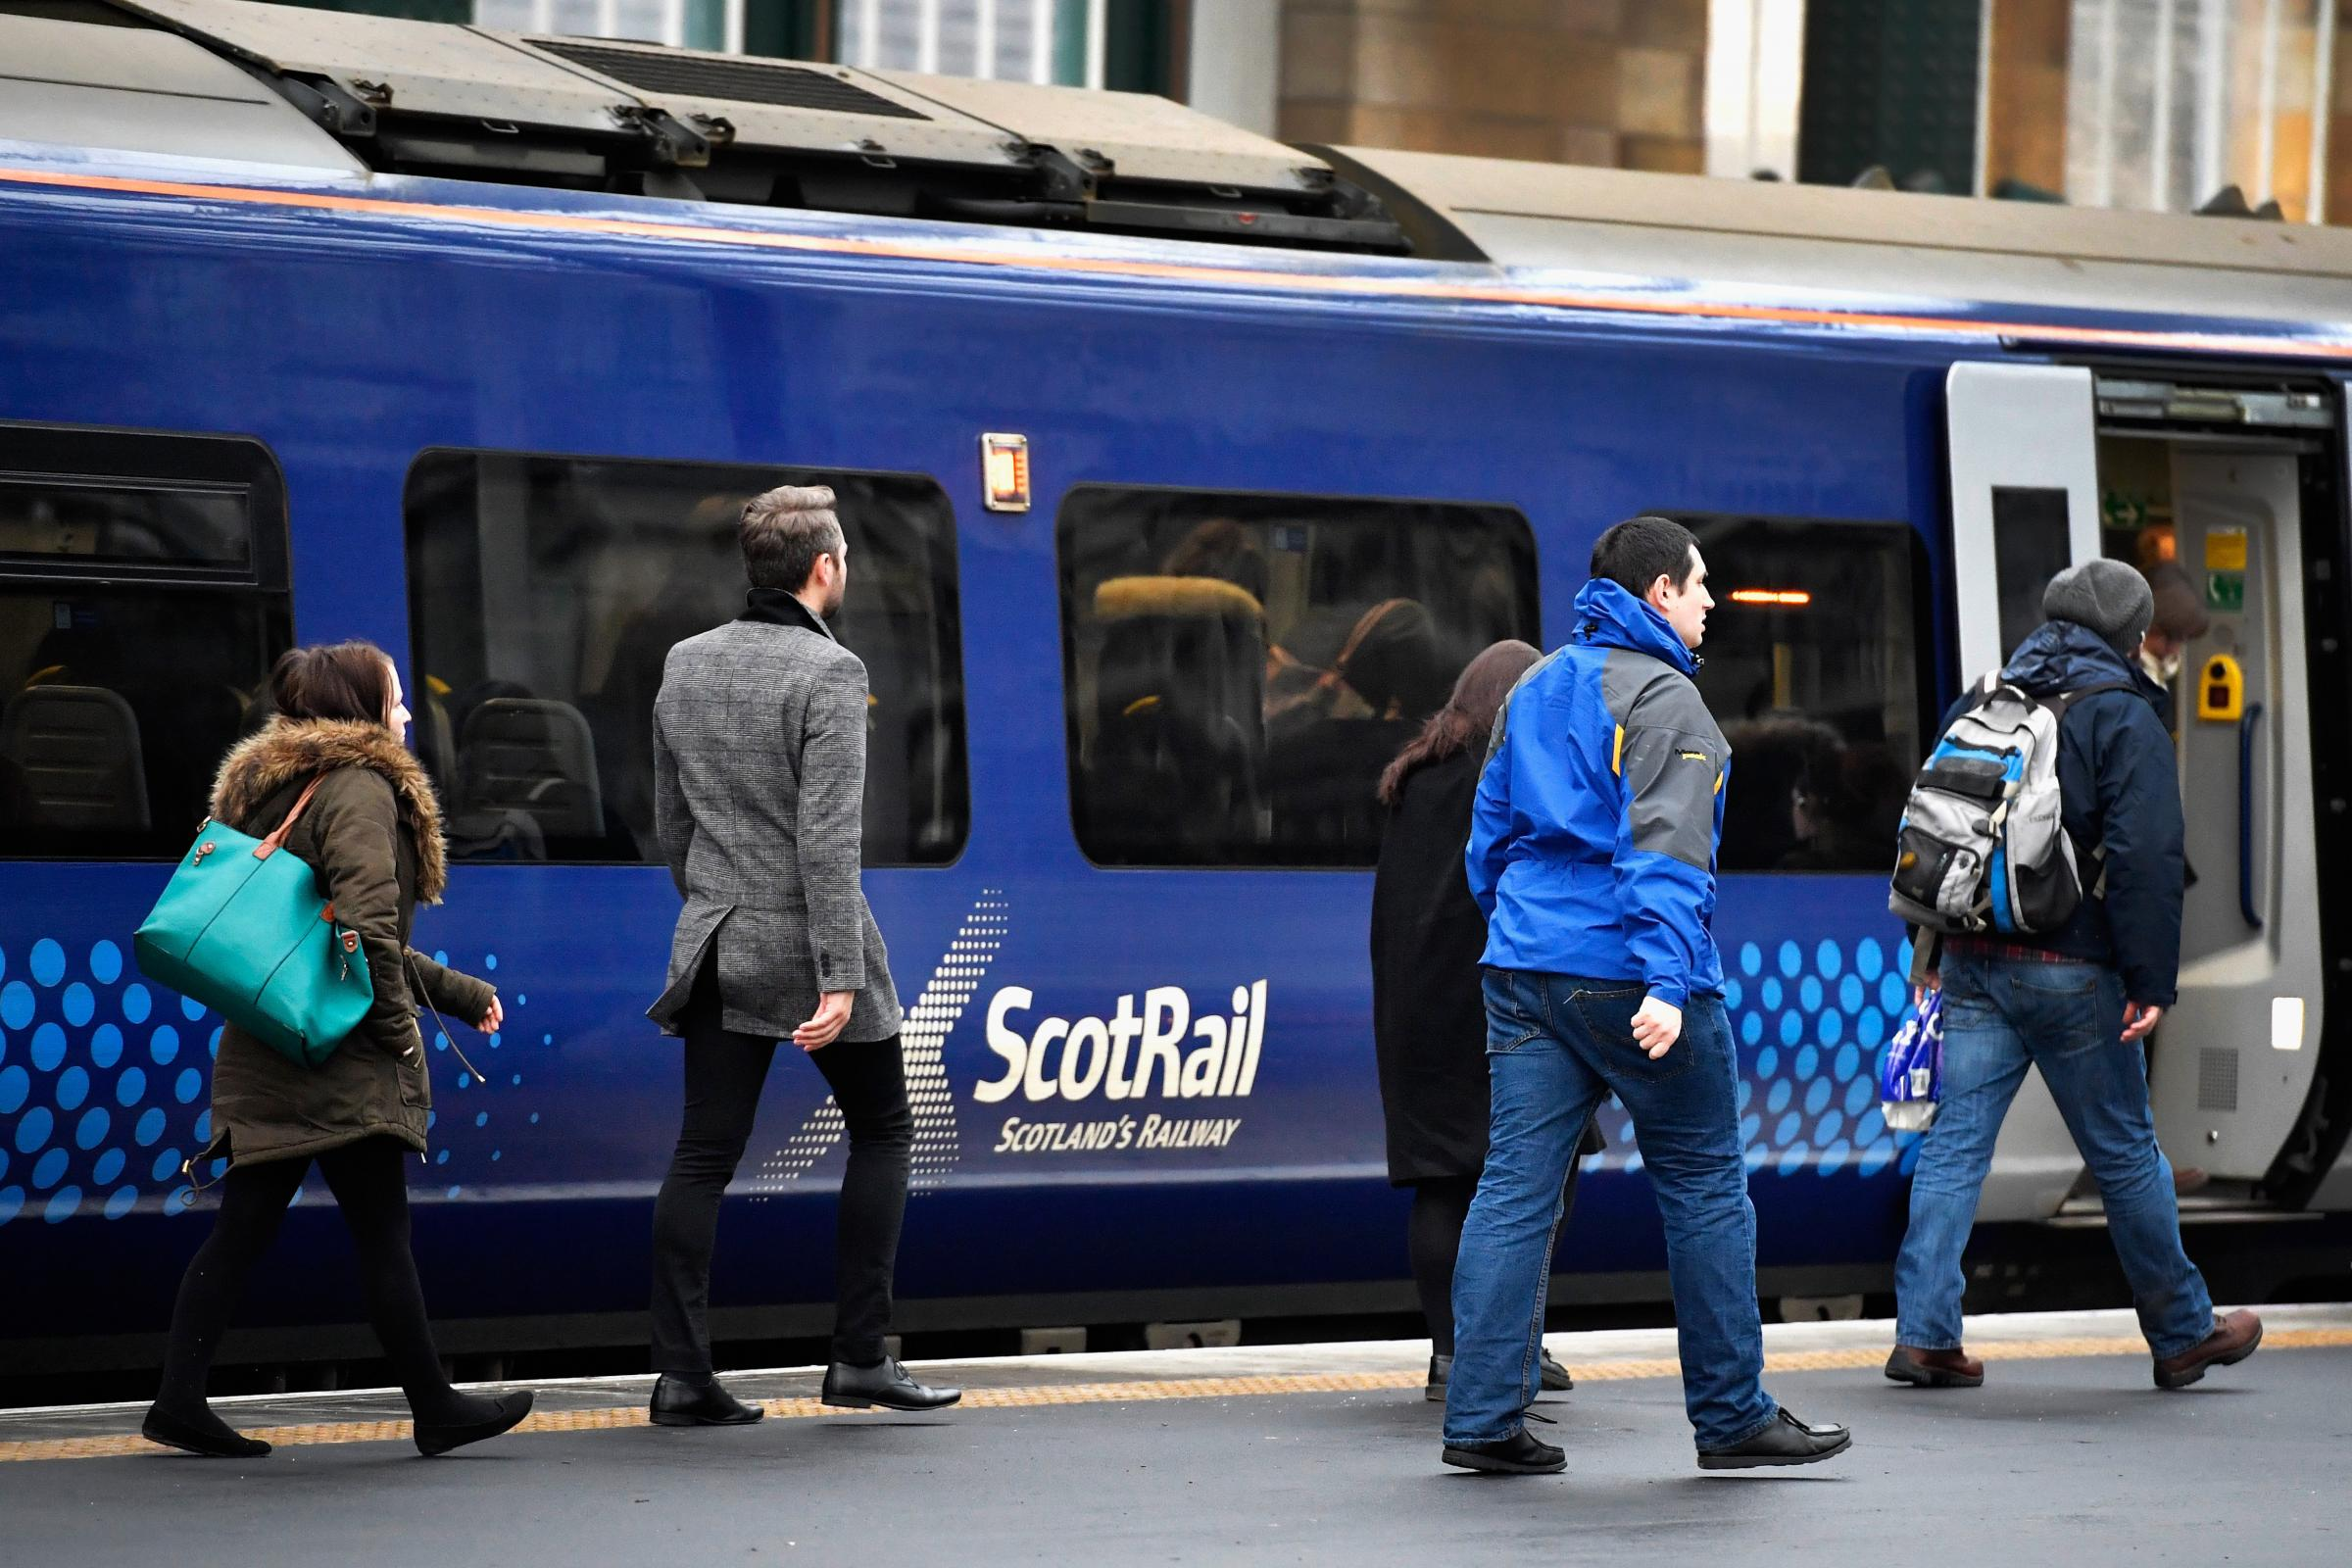 ScotRail passengers are entitled to claim a refund if they are delayed by more than 30 minutes